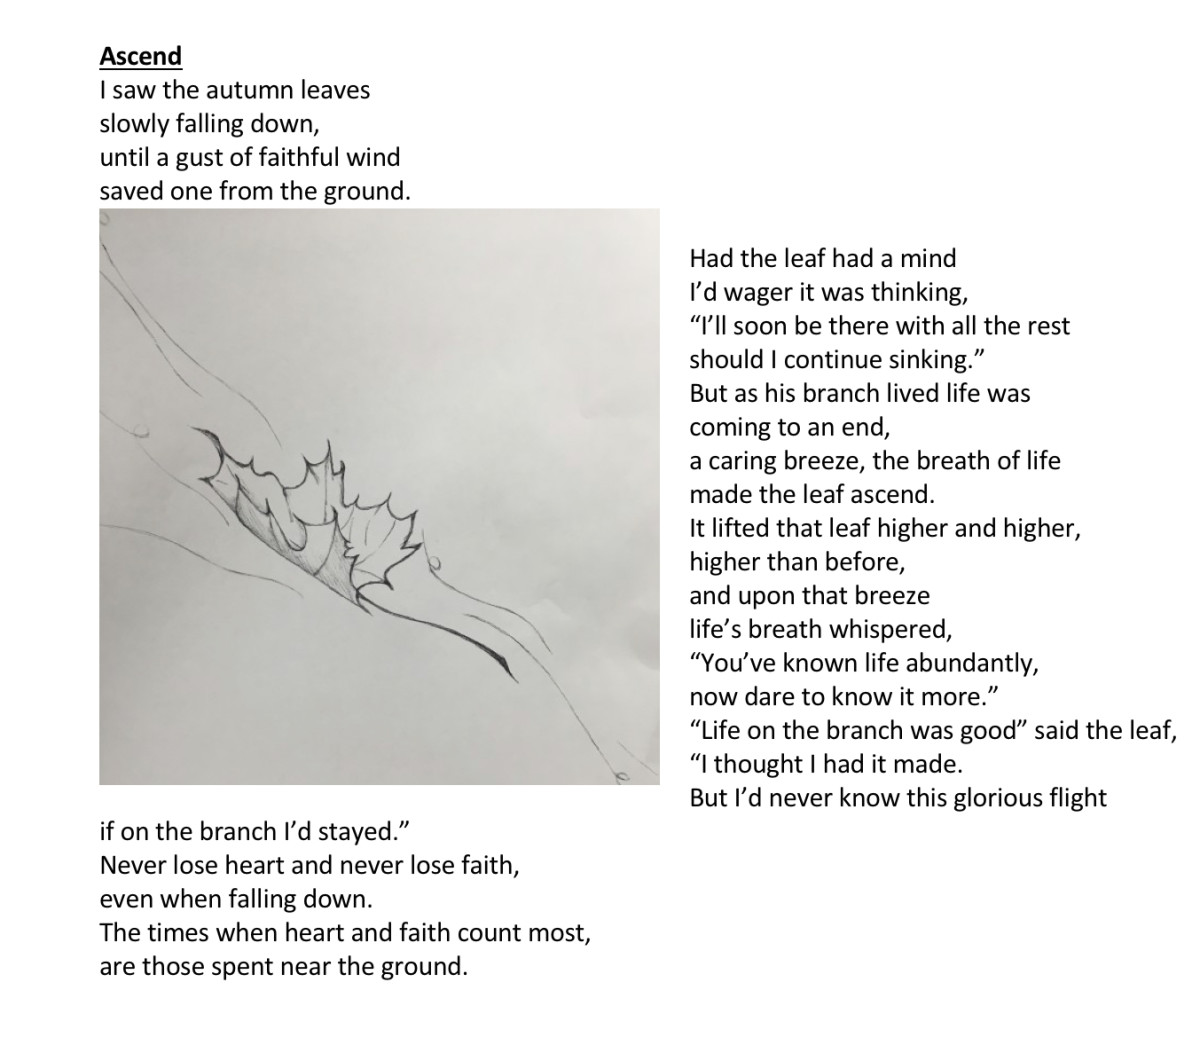 ascend-a-poem-that-will-lift-you